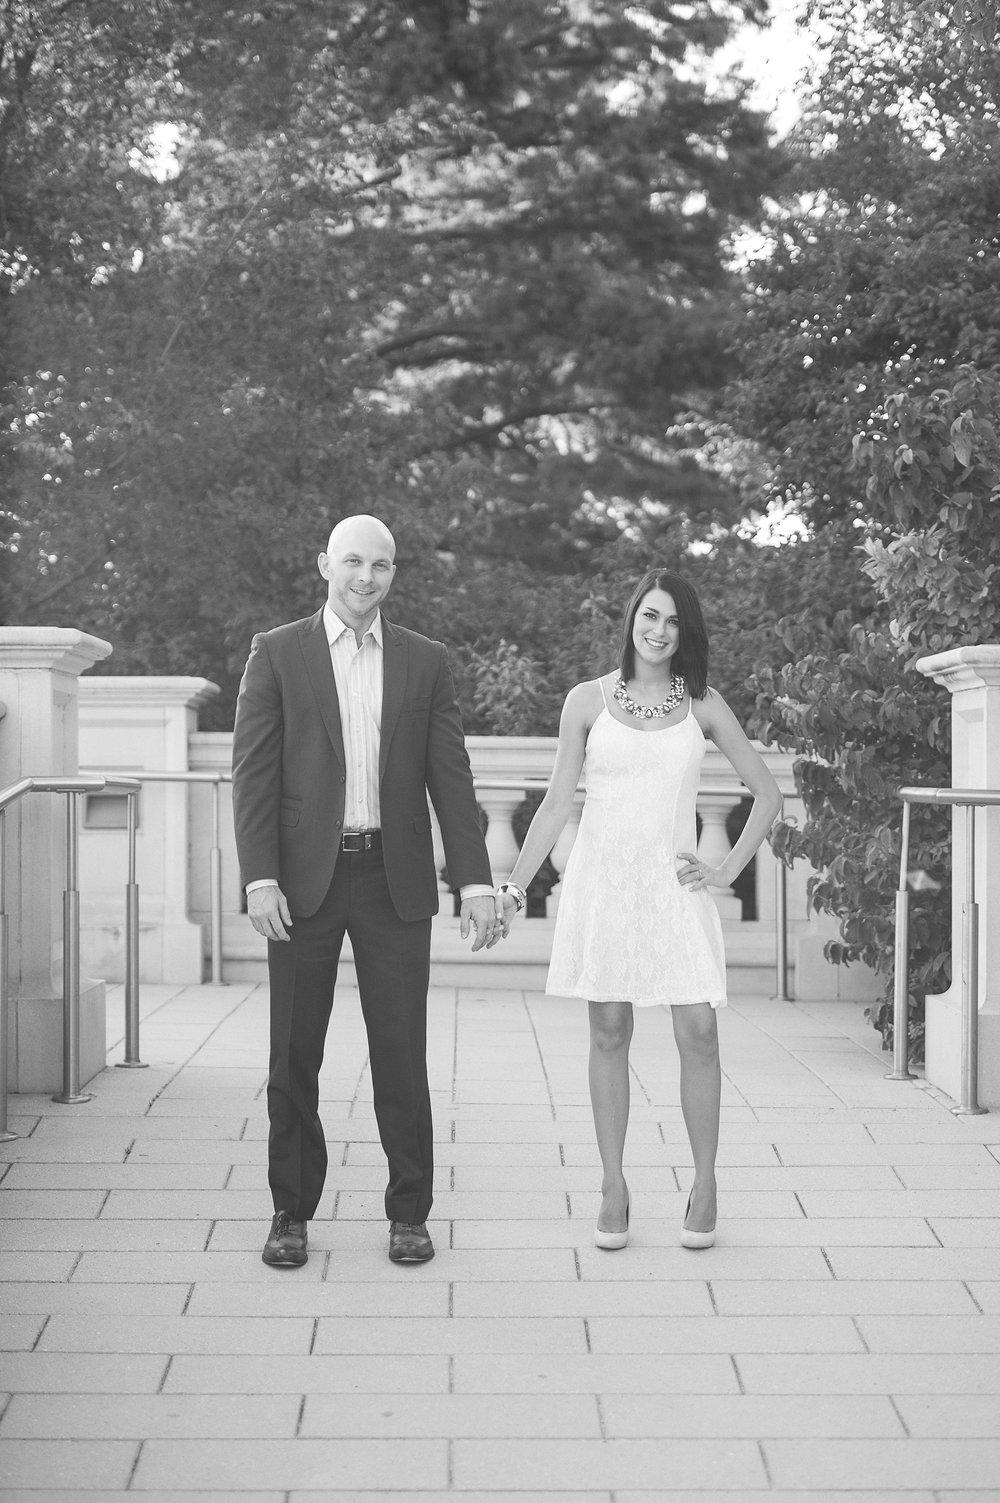 St. Louis Engagements by Christa Donald Photography_42.jpg